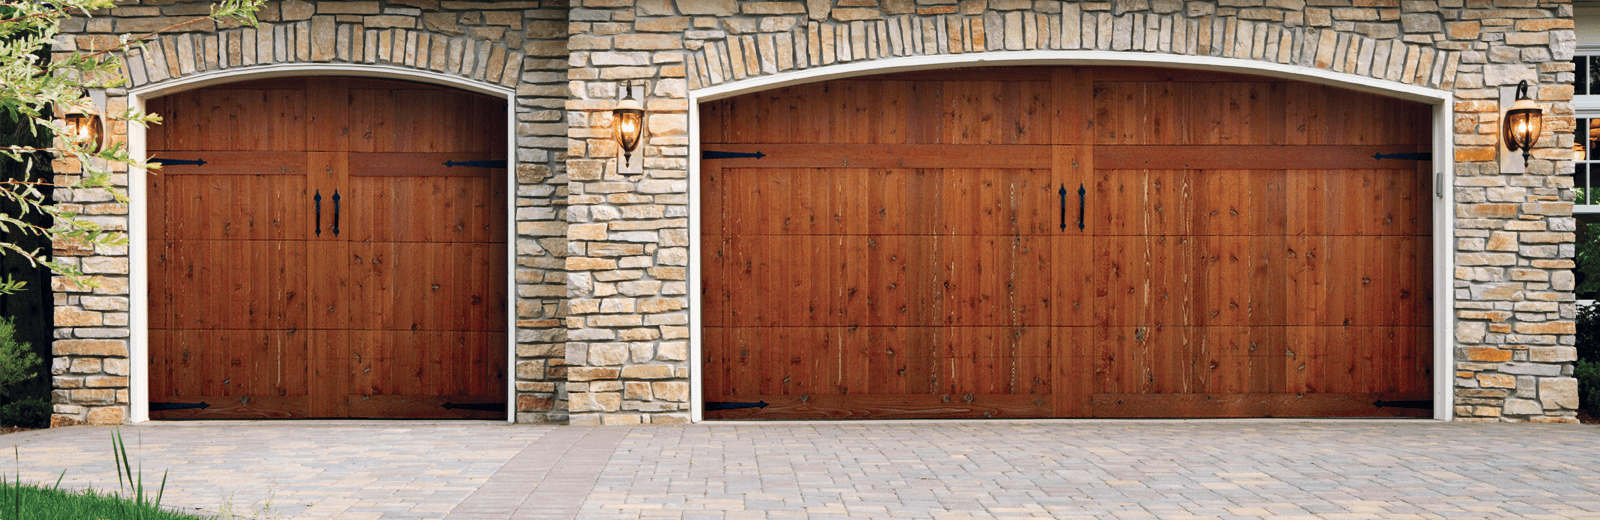 Garage Door Services. Garage Door Repair